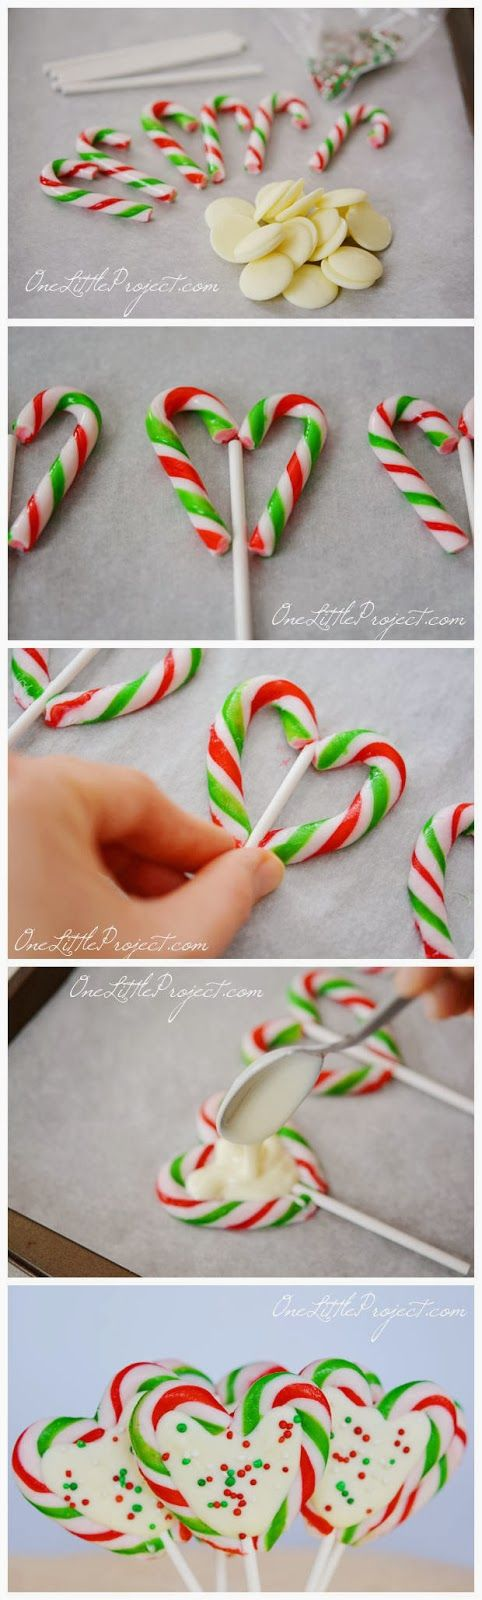 Candy Cane Hearts! They make the perfect gift for the holidays! Candy cane party decor ideas - Candy Canes - Christmas Candy Cane Crafts #candycane #candycanecrafts #christmas